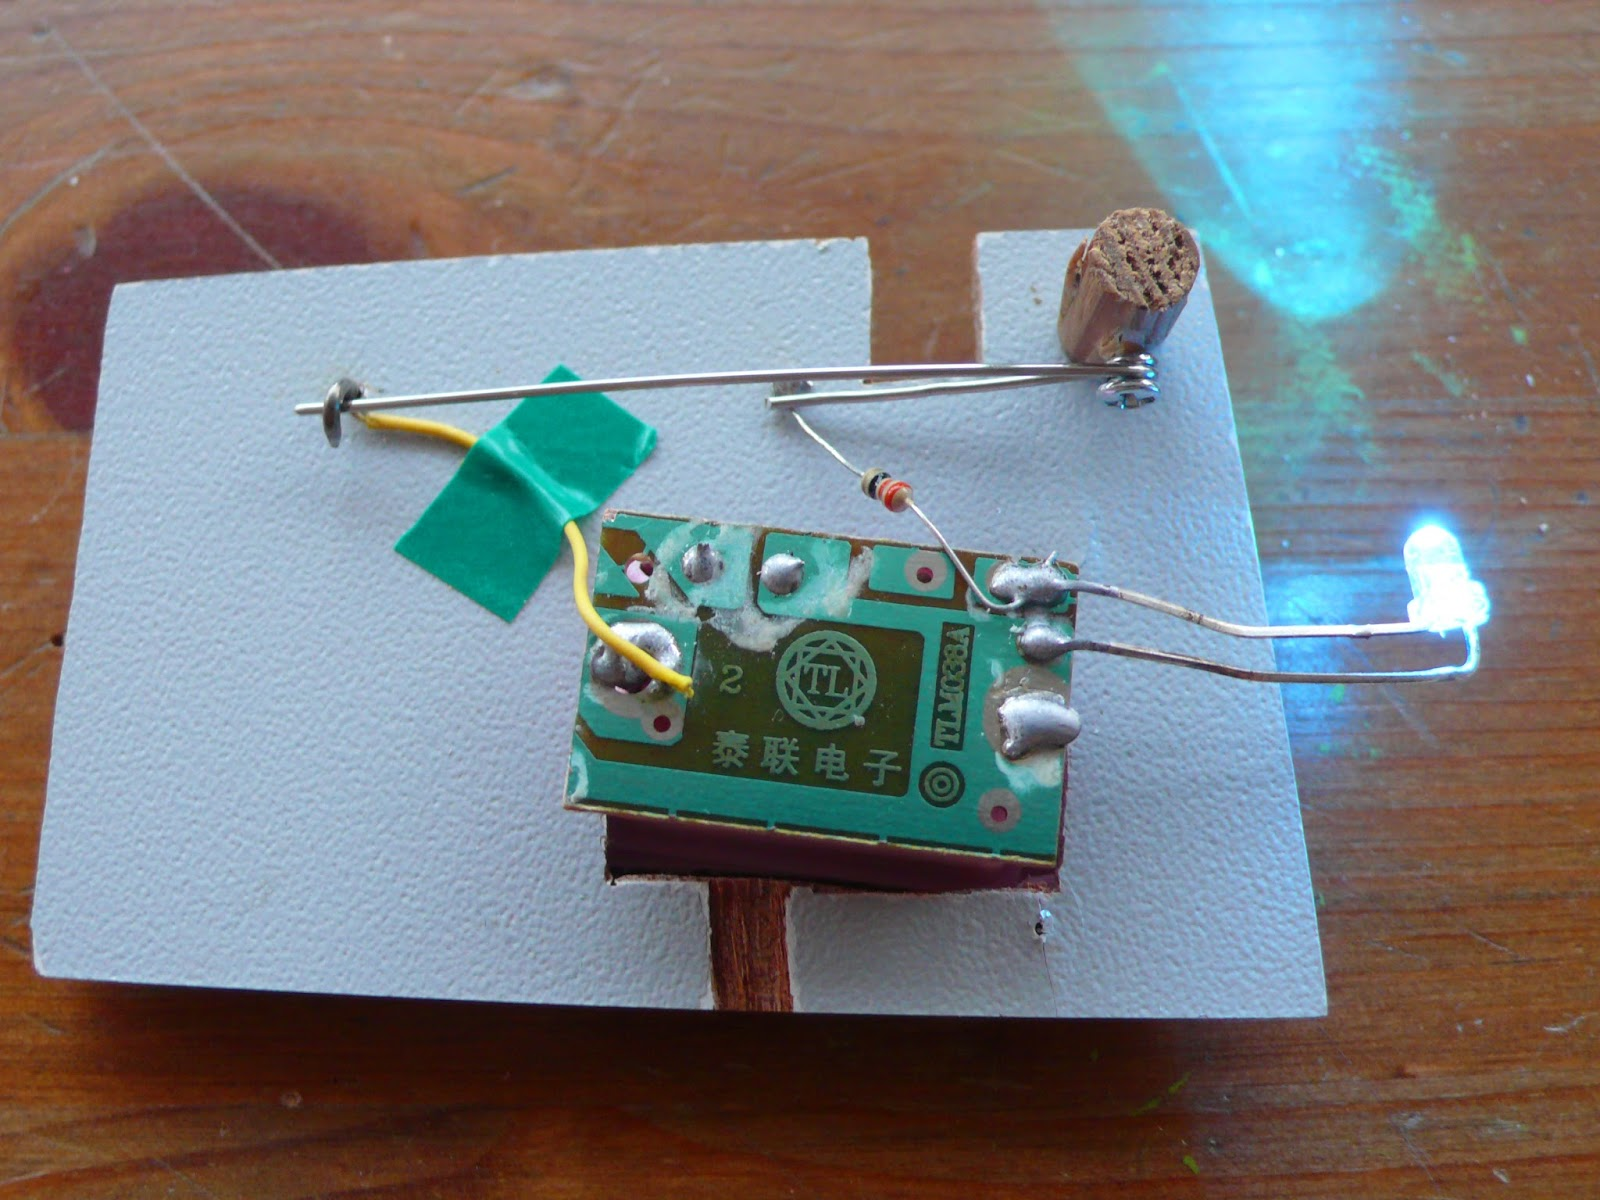 A prototype of a brooch pin which acts as a switch for an electrical circuit, here the brooch pin is closed and the light is on.